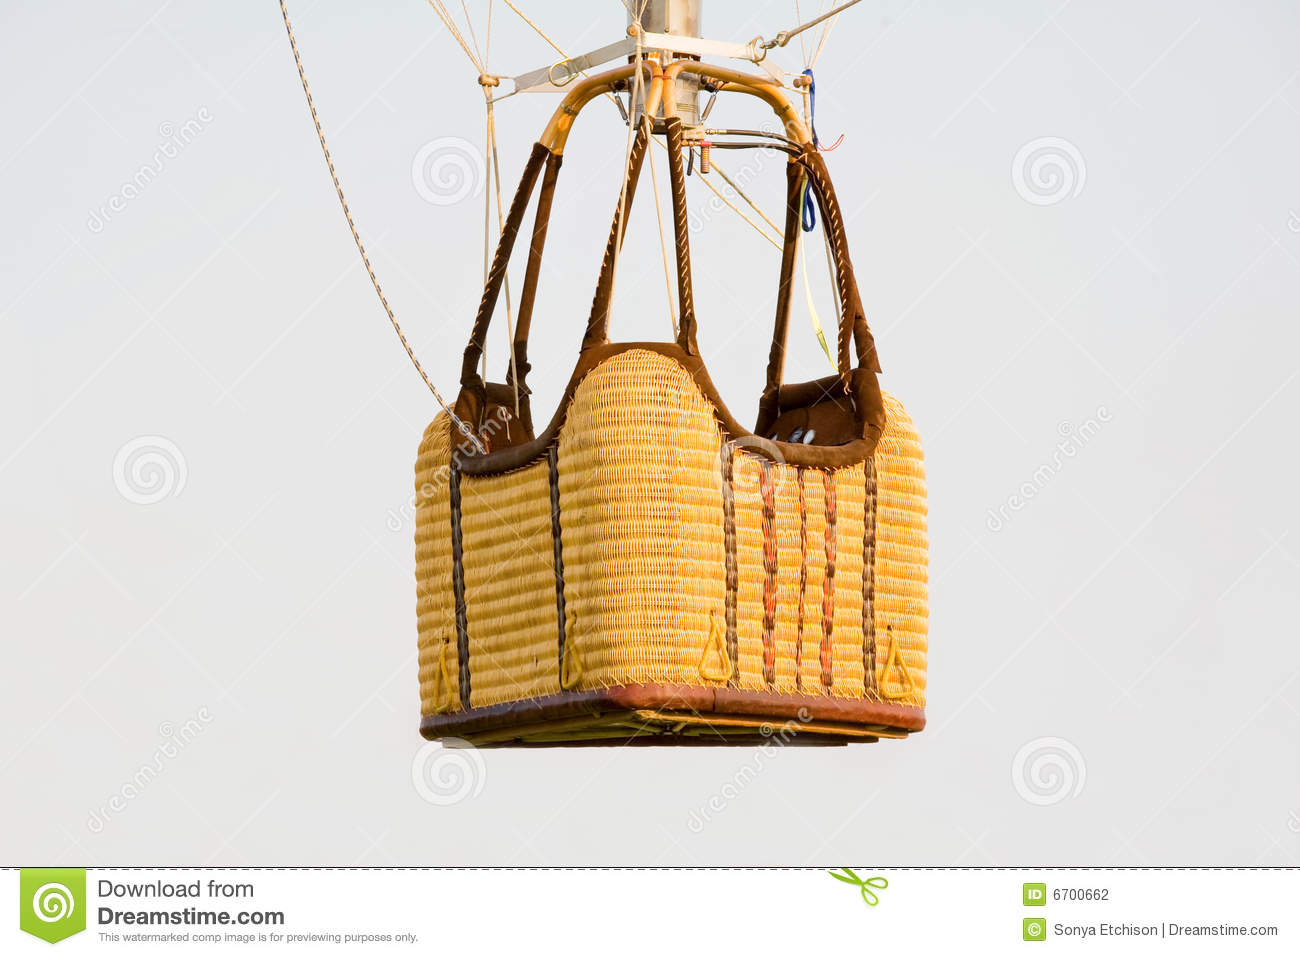 Wicker Basket stock photo. Image of white, isolated, empty ...